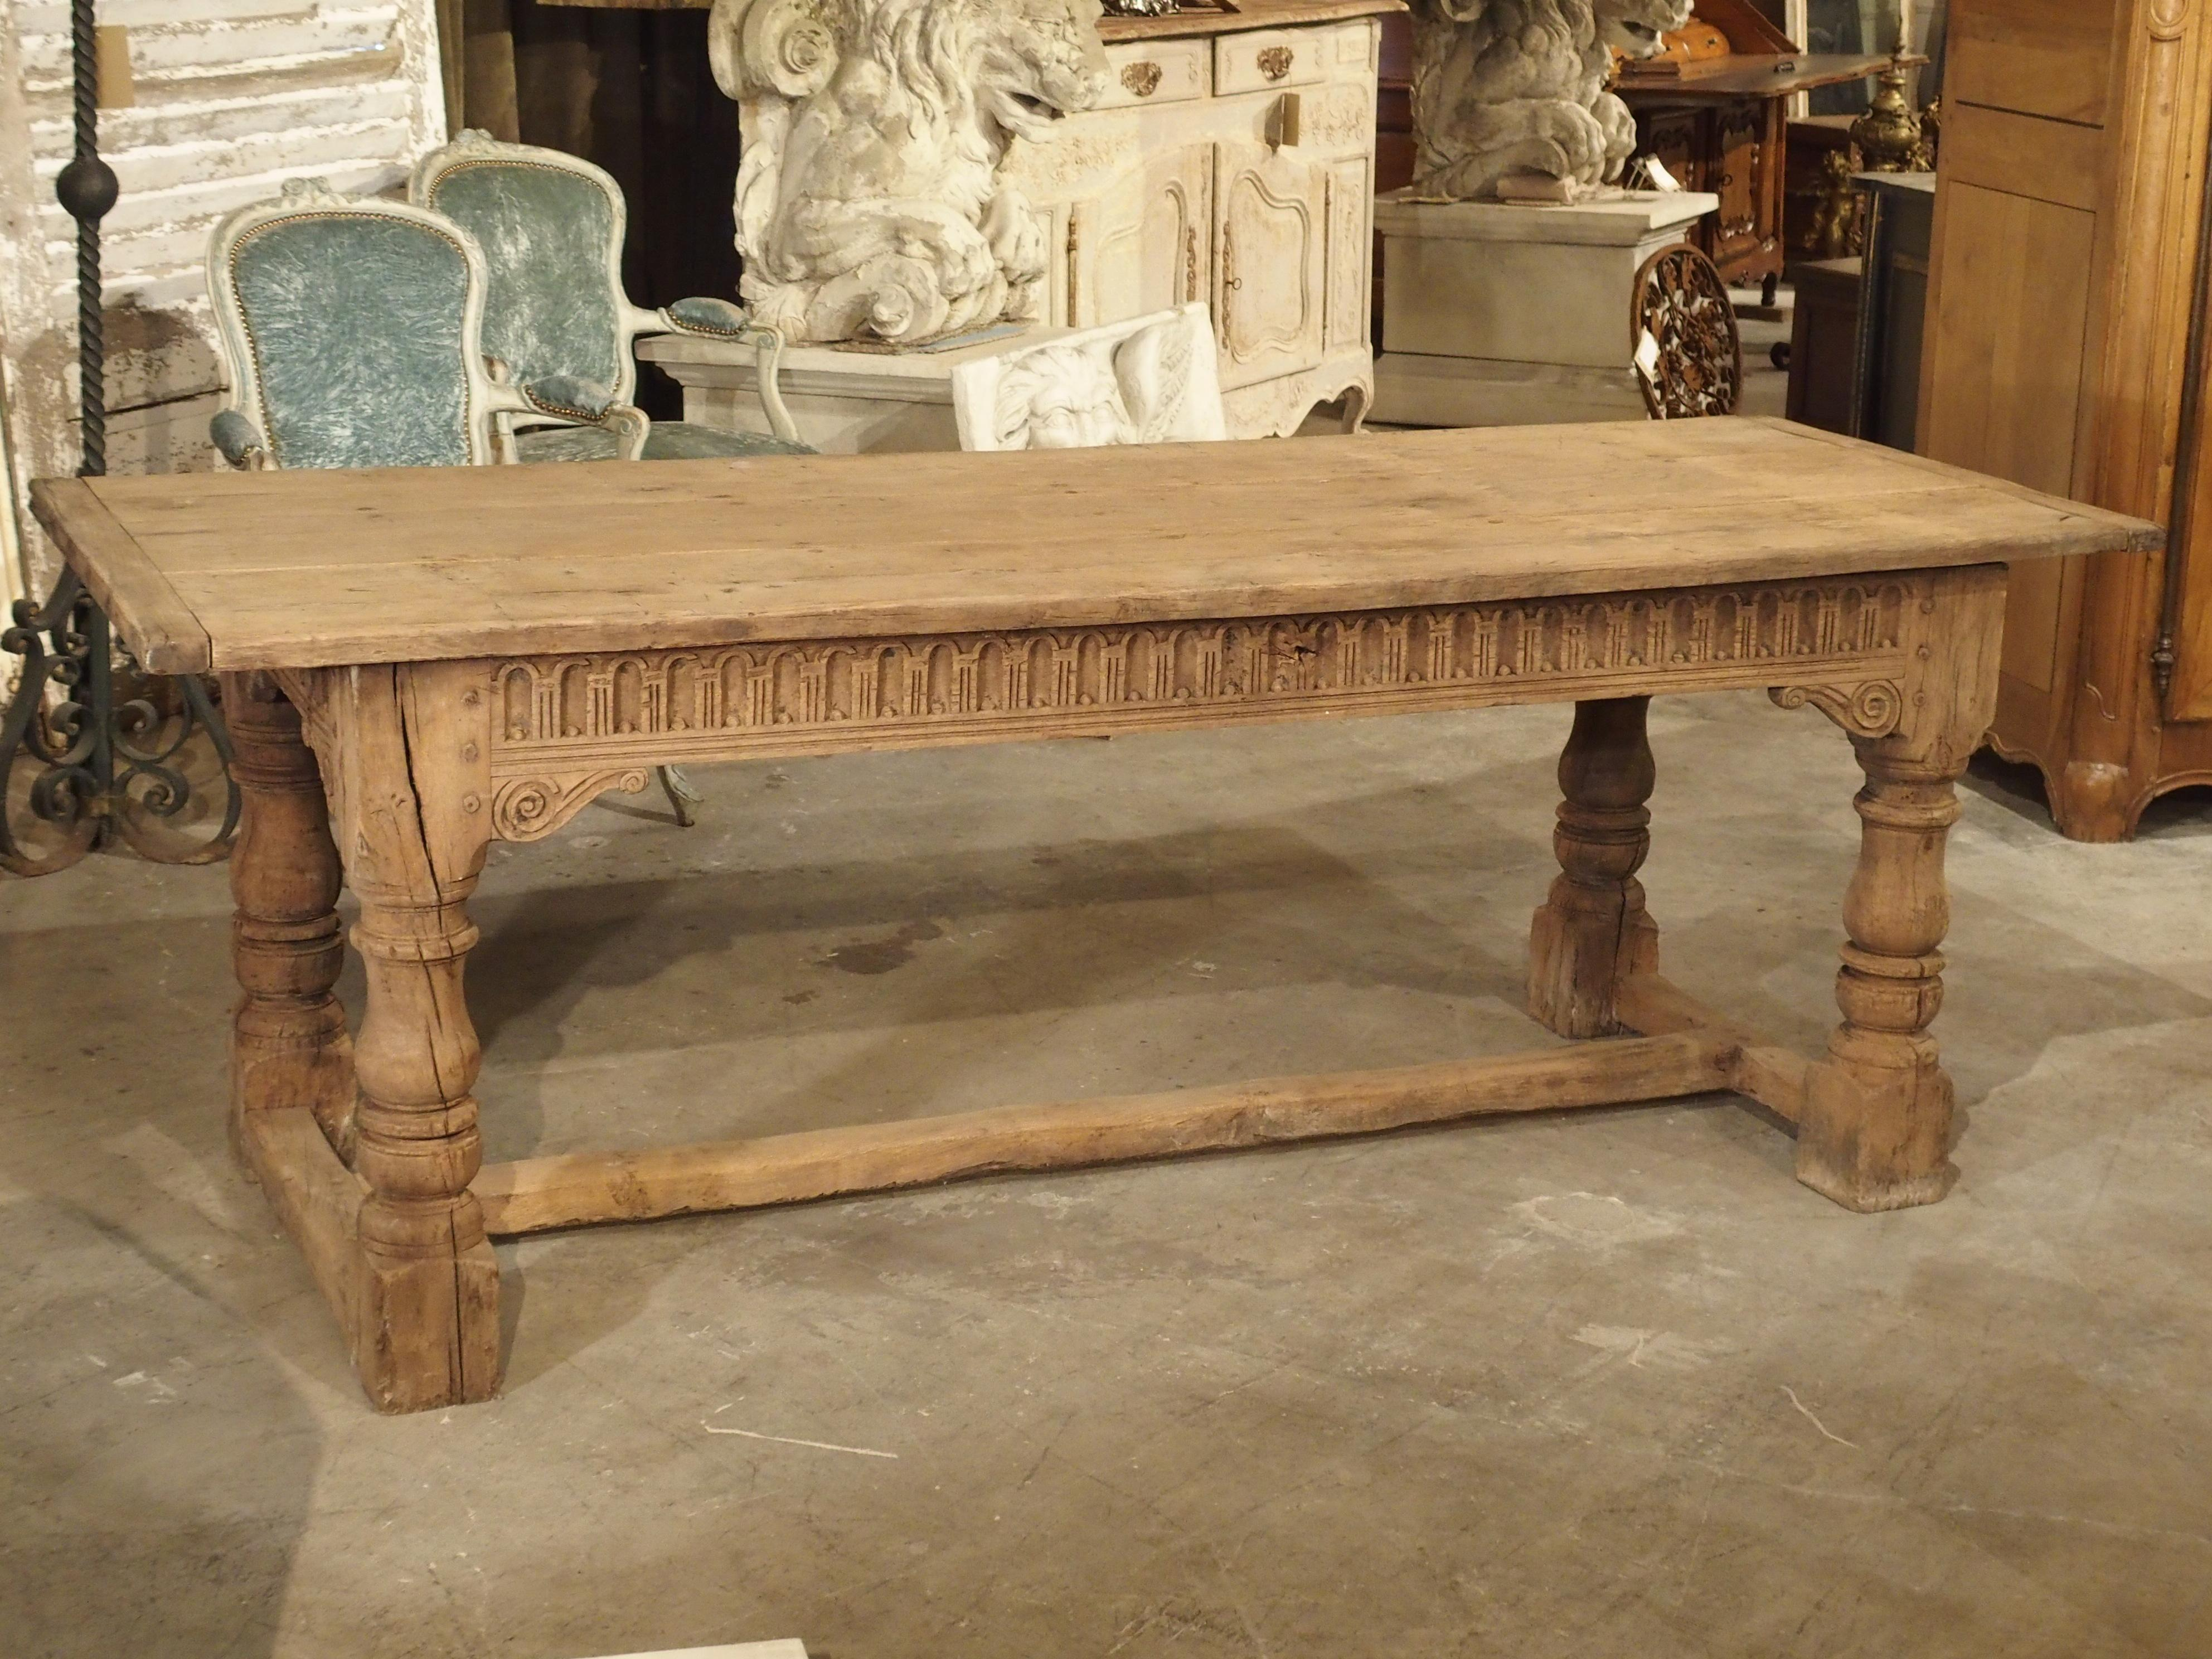 Tremendous Stripped Antique Oak Jacobean Style Refectory Table From Ibusinesslaw Wood Chair Design Ideas Ibusinesslaworg